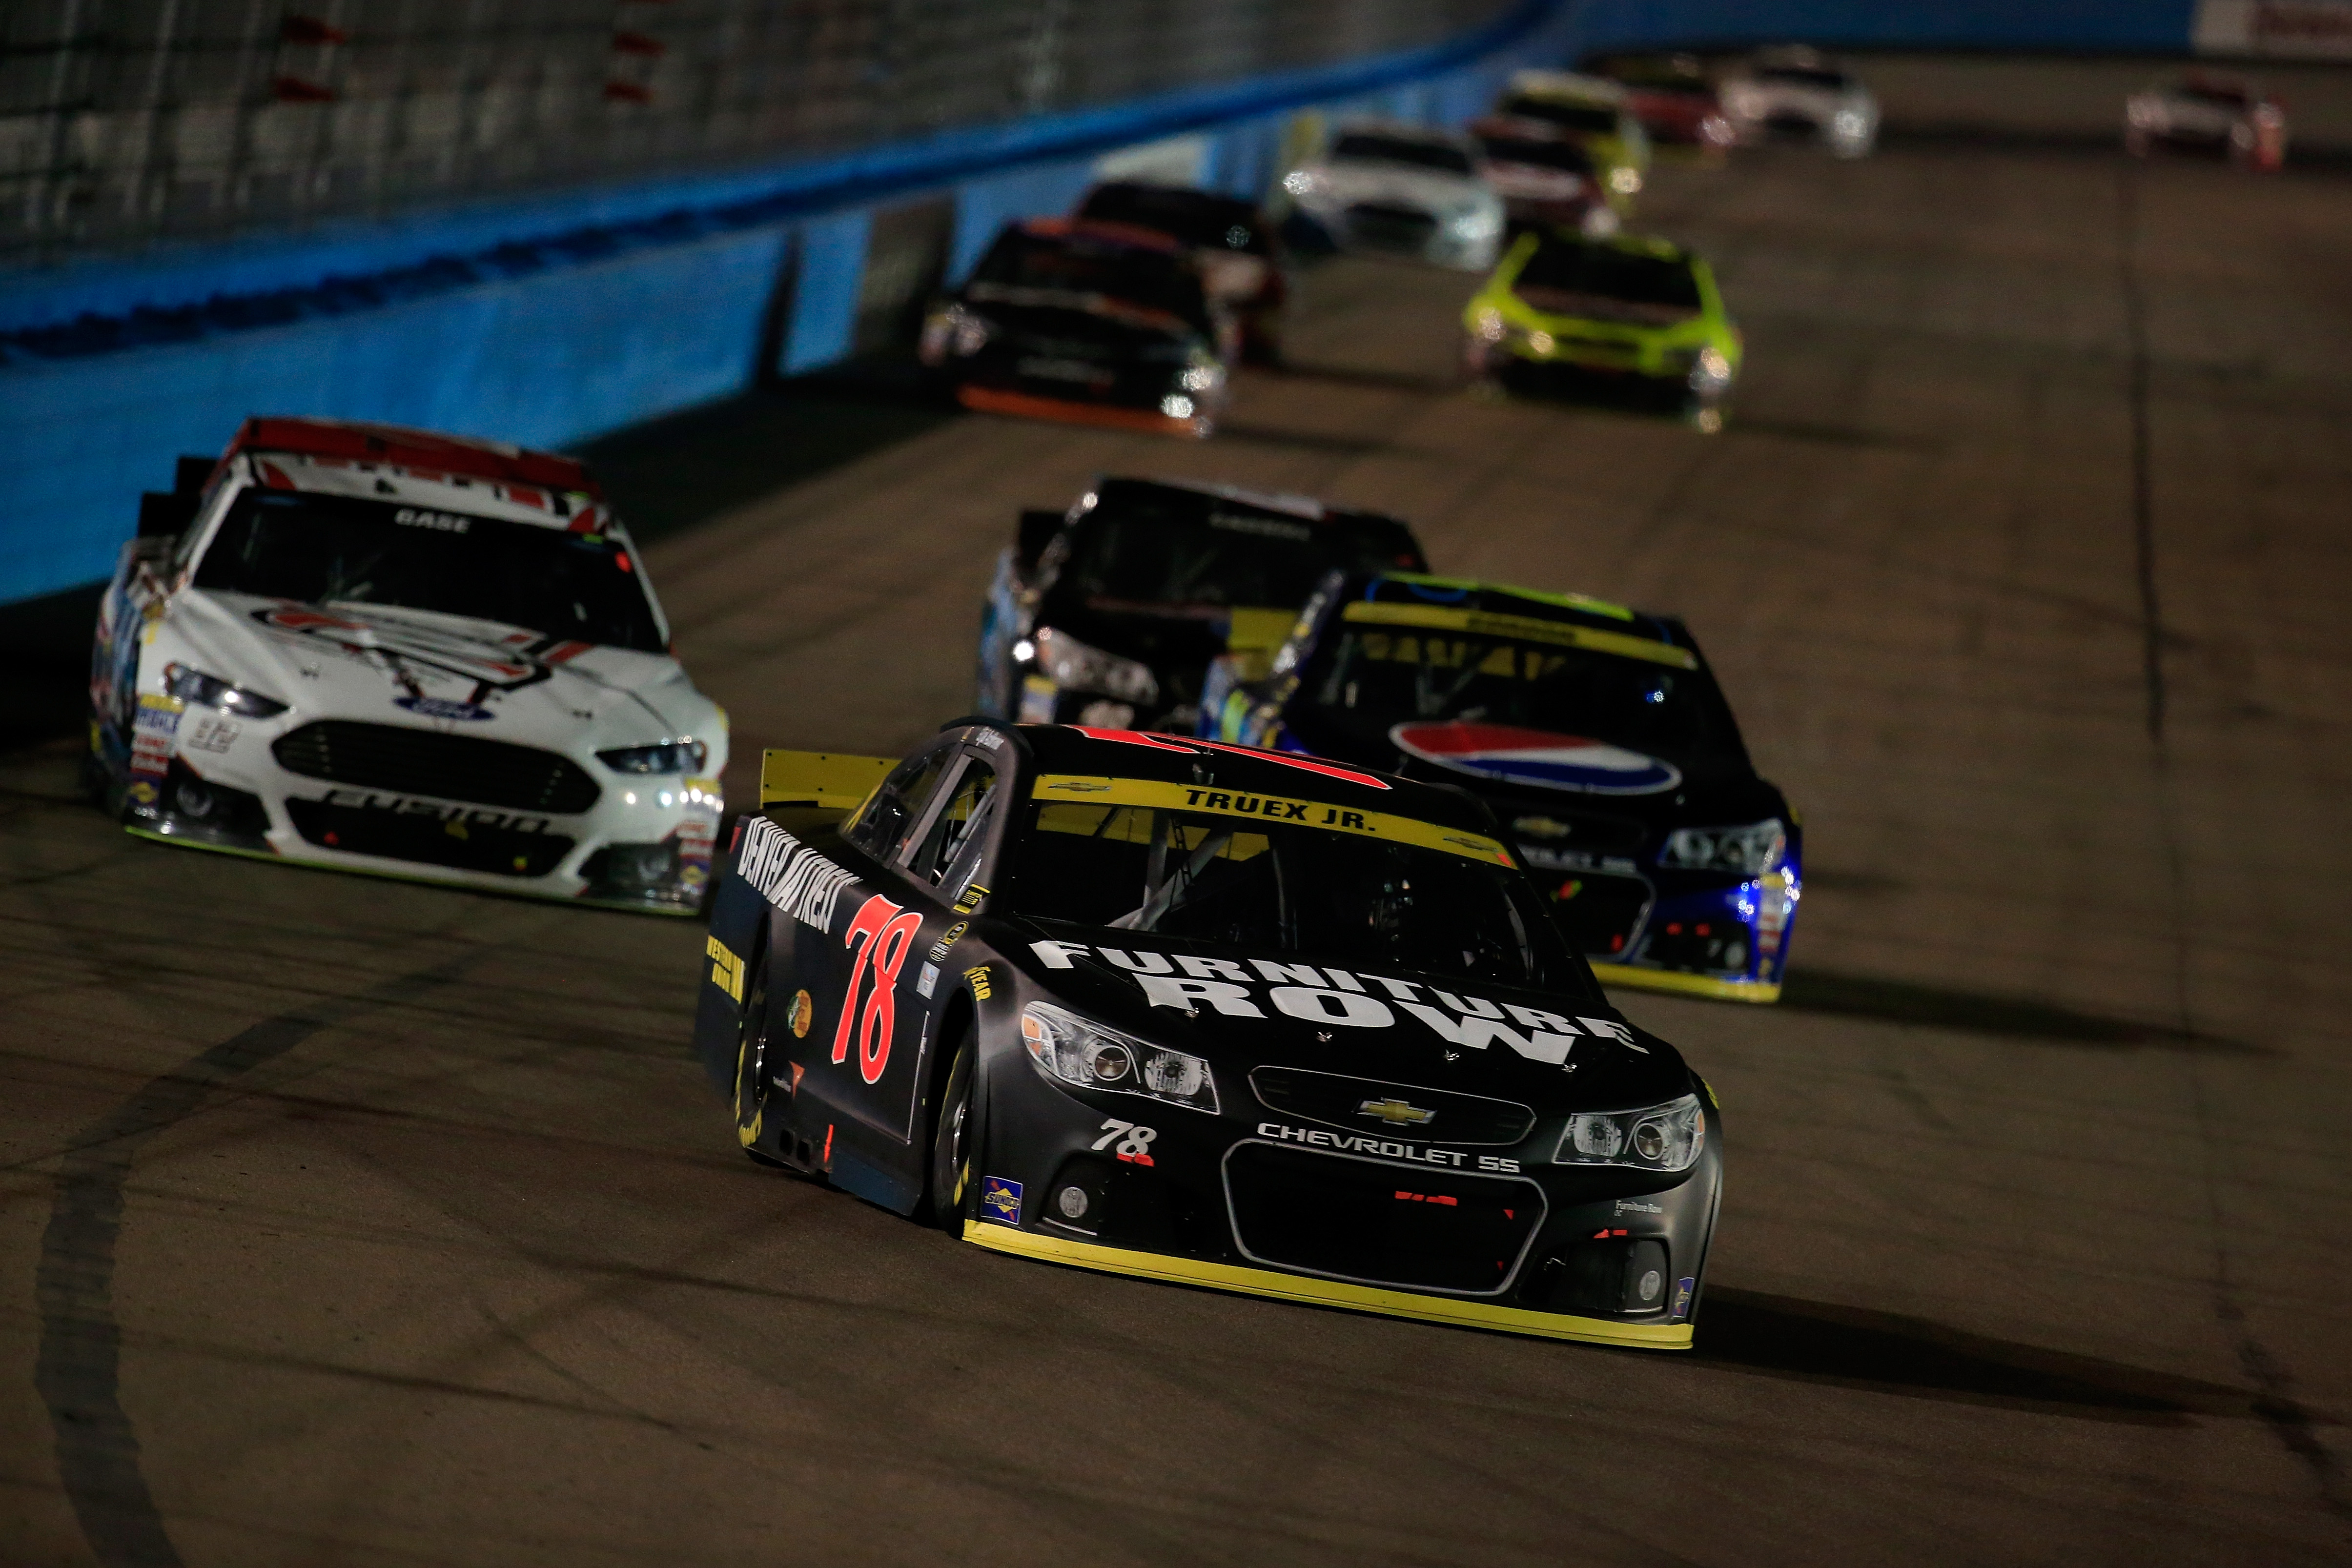 Martin Truex Jr., driver of the #78 Furniture Row/Visser Precision Chevrolet, races Jeff Gordon, driver of the #24 Pepsi Chevrolet, during the NASCAR Sprint Cup Series Quicken Loans Race for Heroes 500 at Phoenix International Raceway on November 15, 2015 in Avondale, Arizona.  (Photo by Chris Trotman/Getty Images)